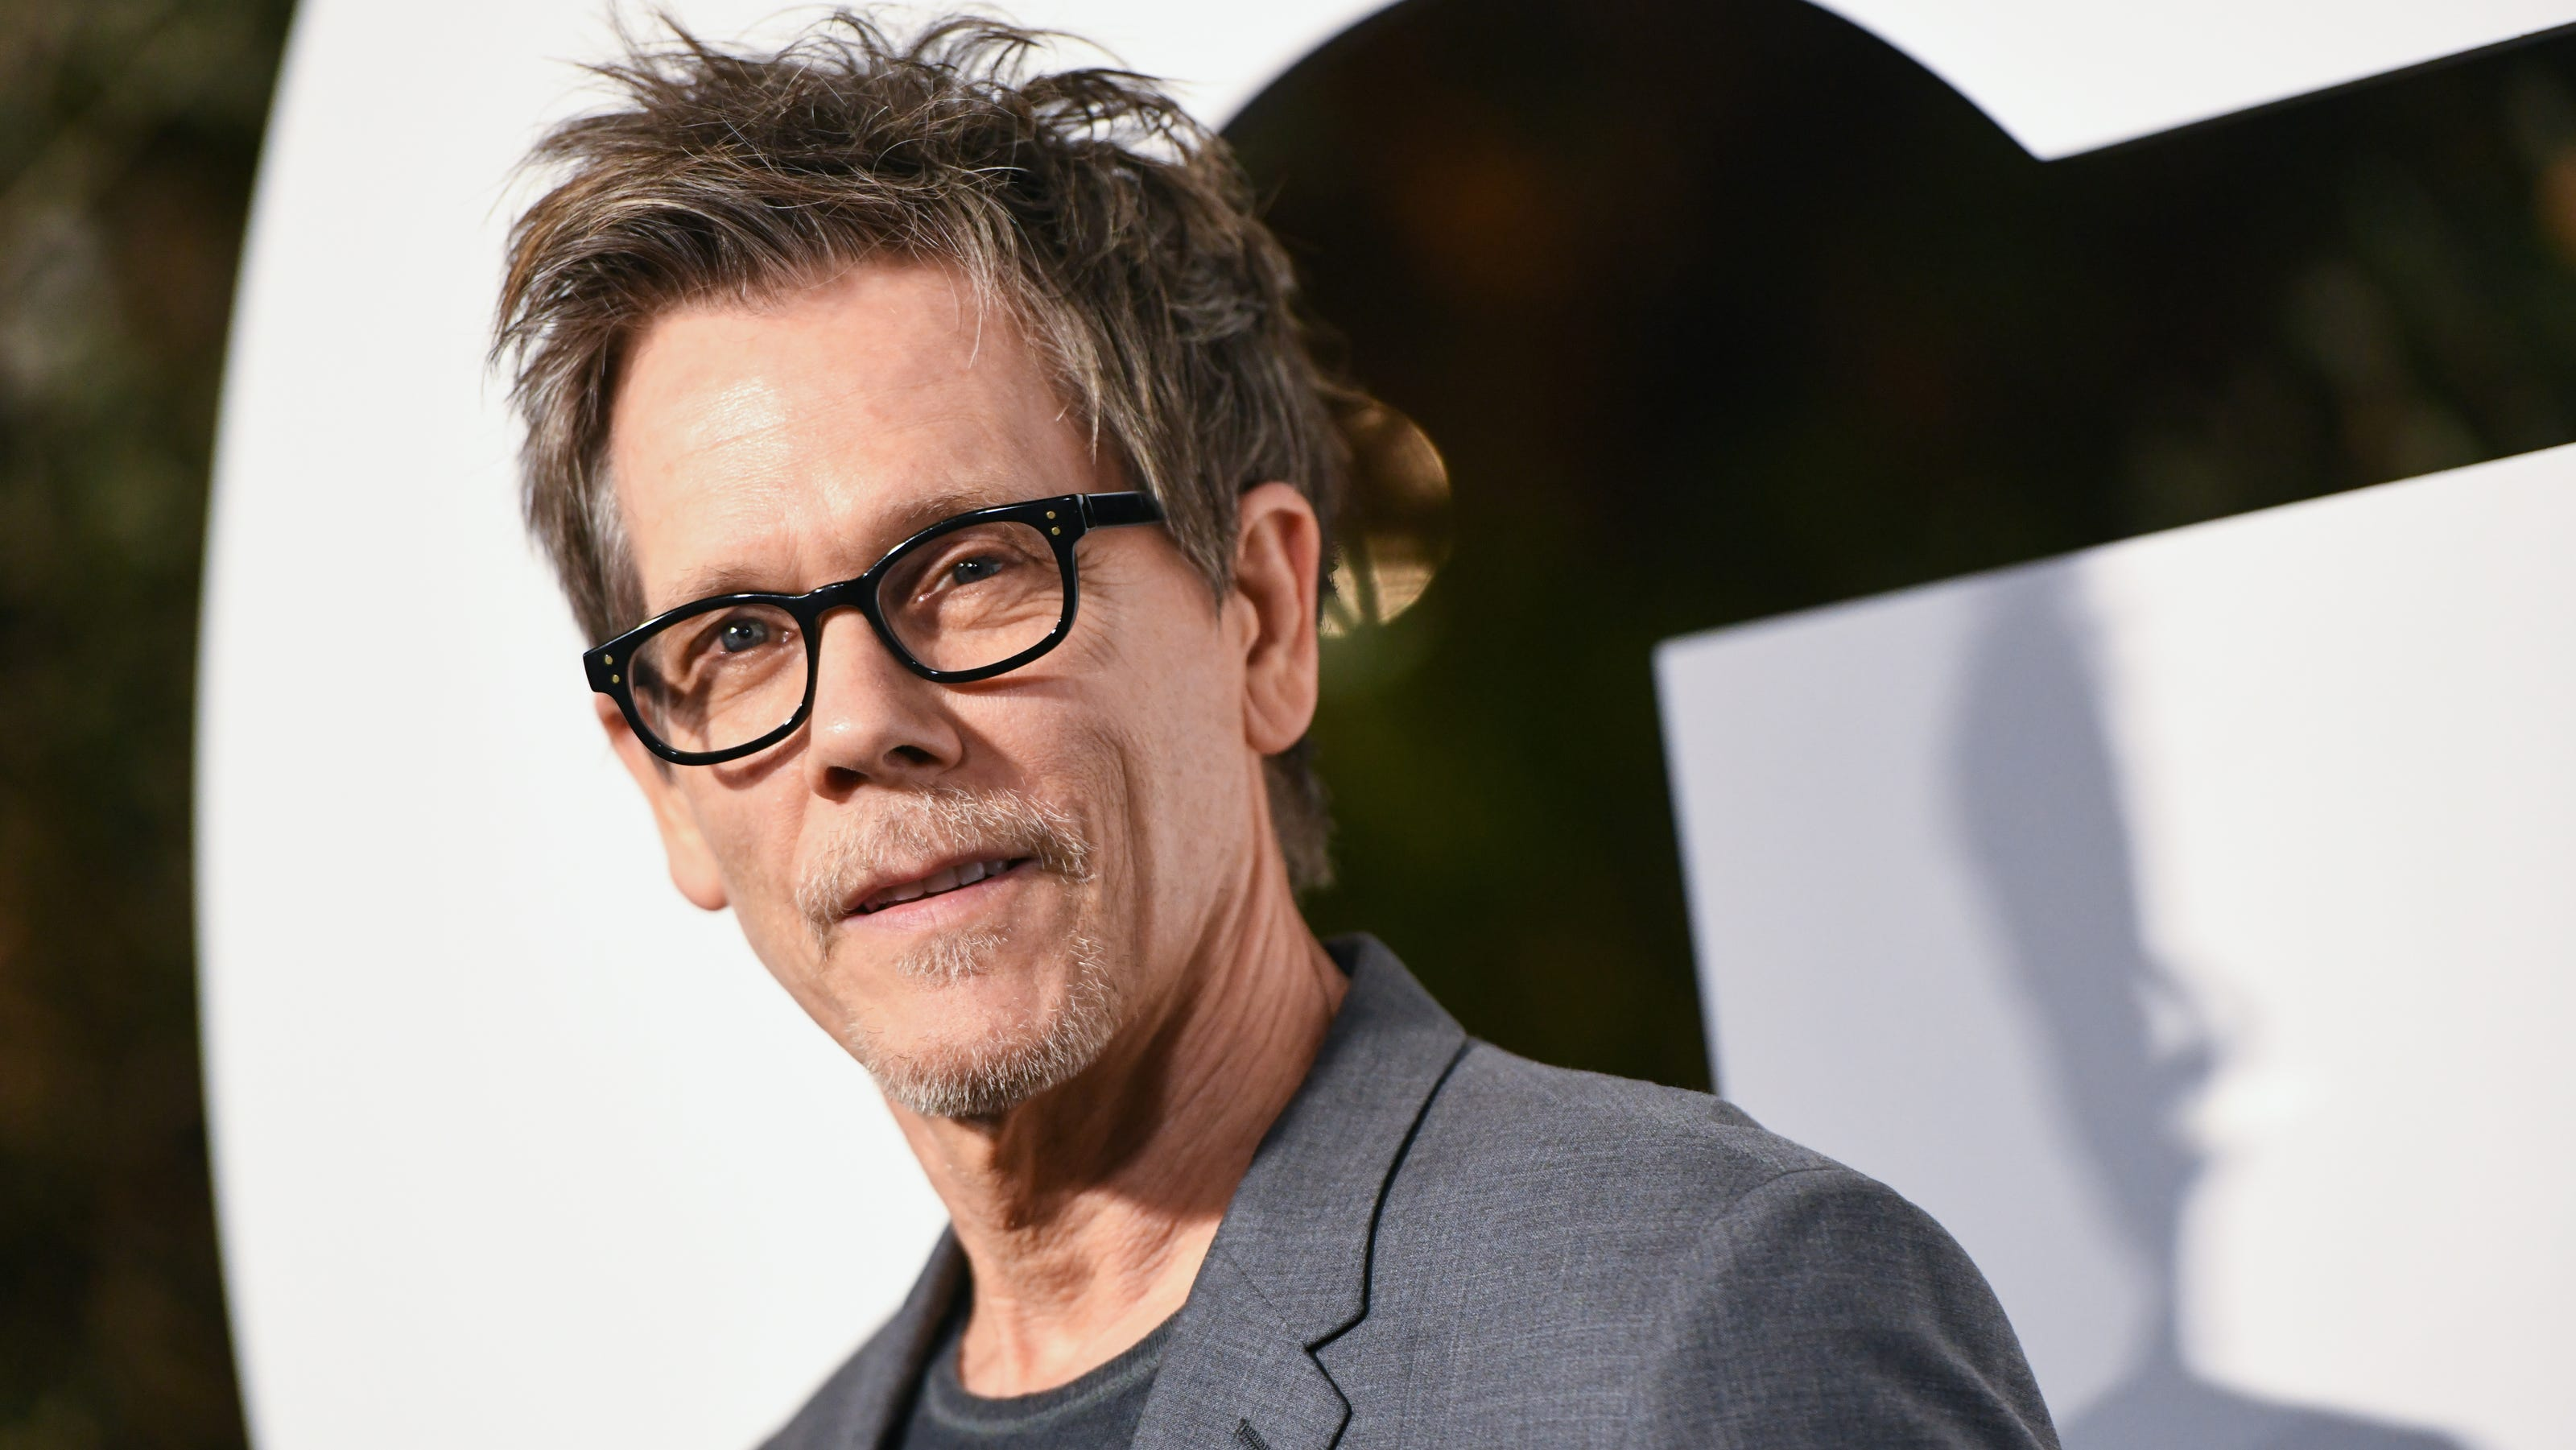 Kevin Bacon sends condolences to family of Michigan man found dead